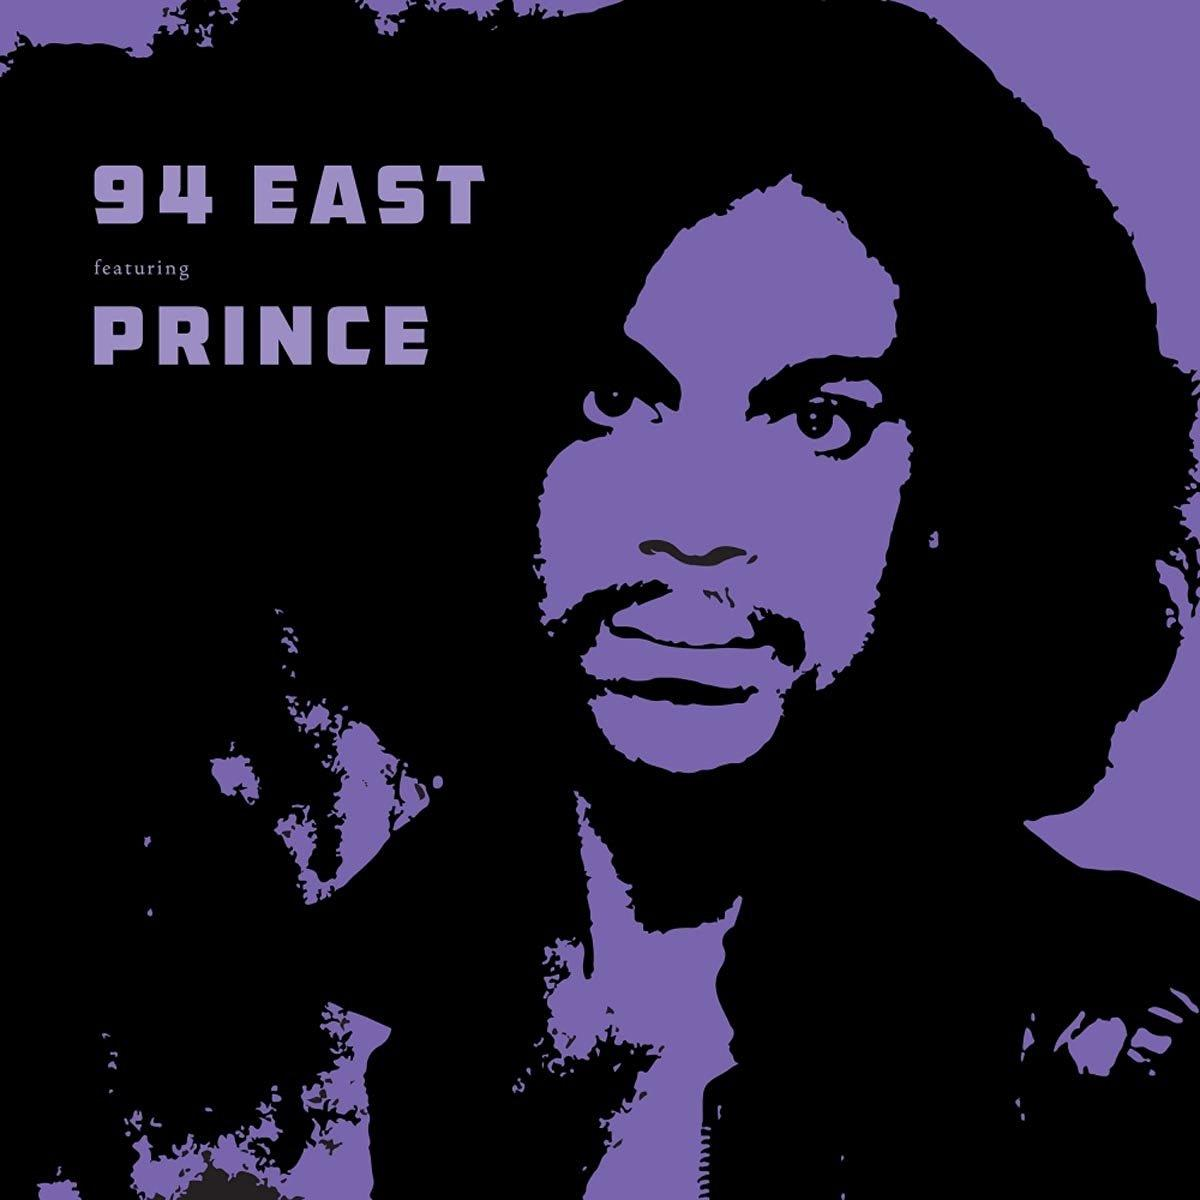 CHARLYL219 Charly  94 East feat. Prince 94 East feat. Prince (LP)